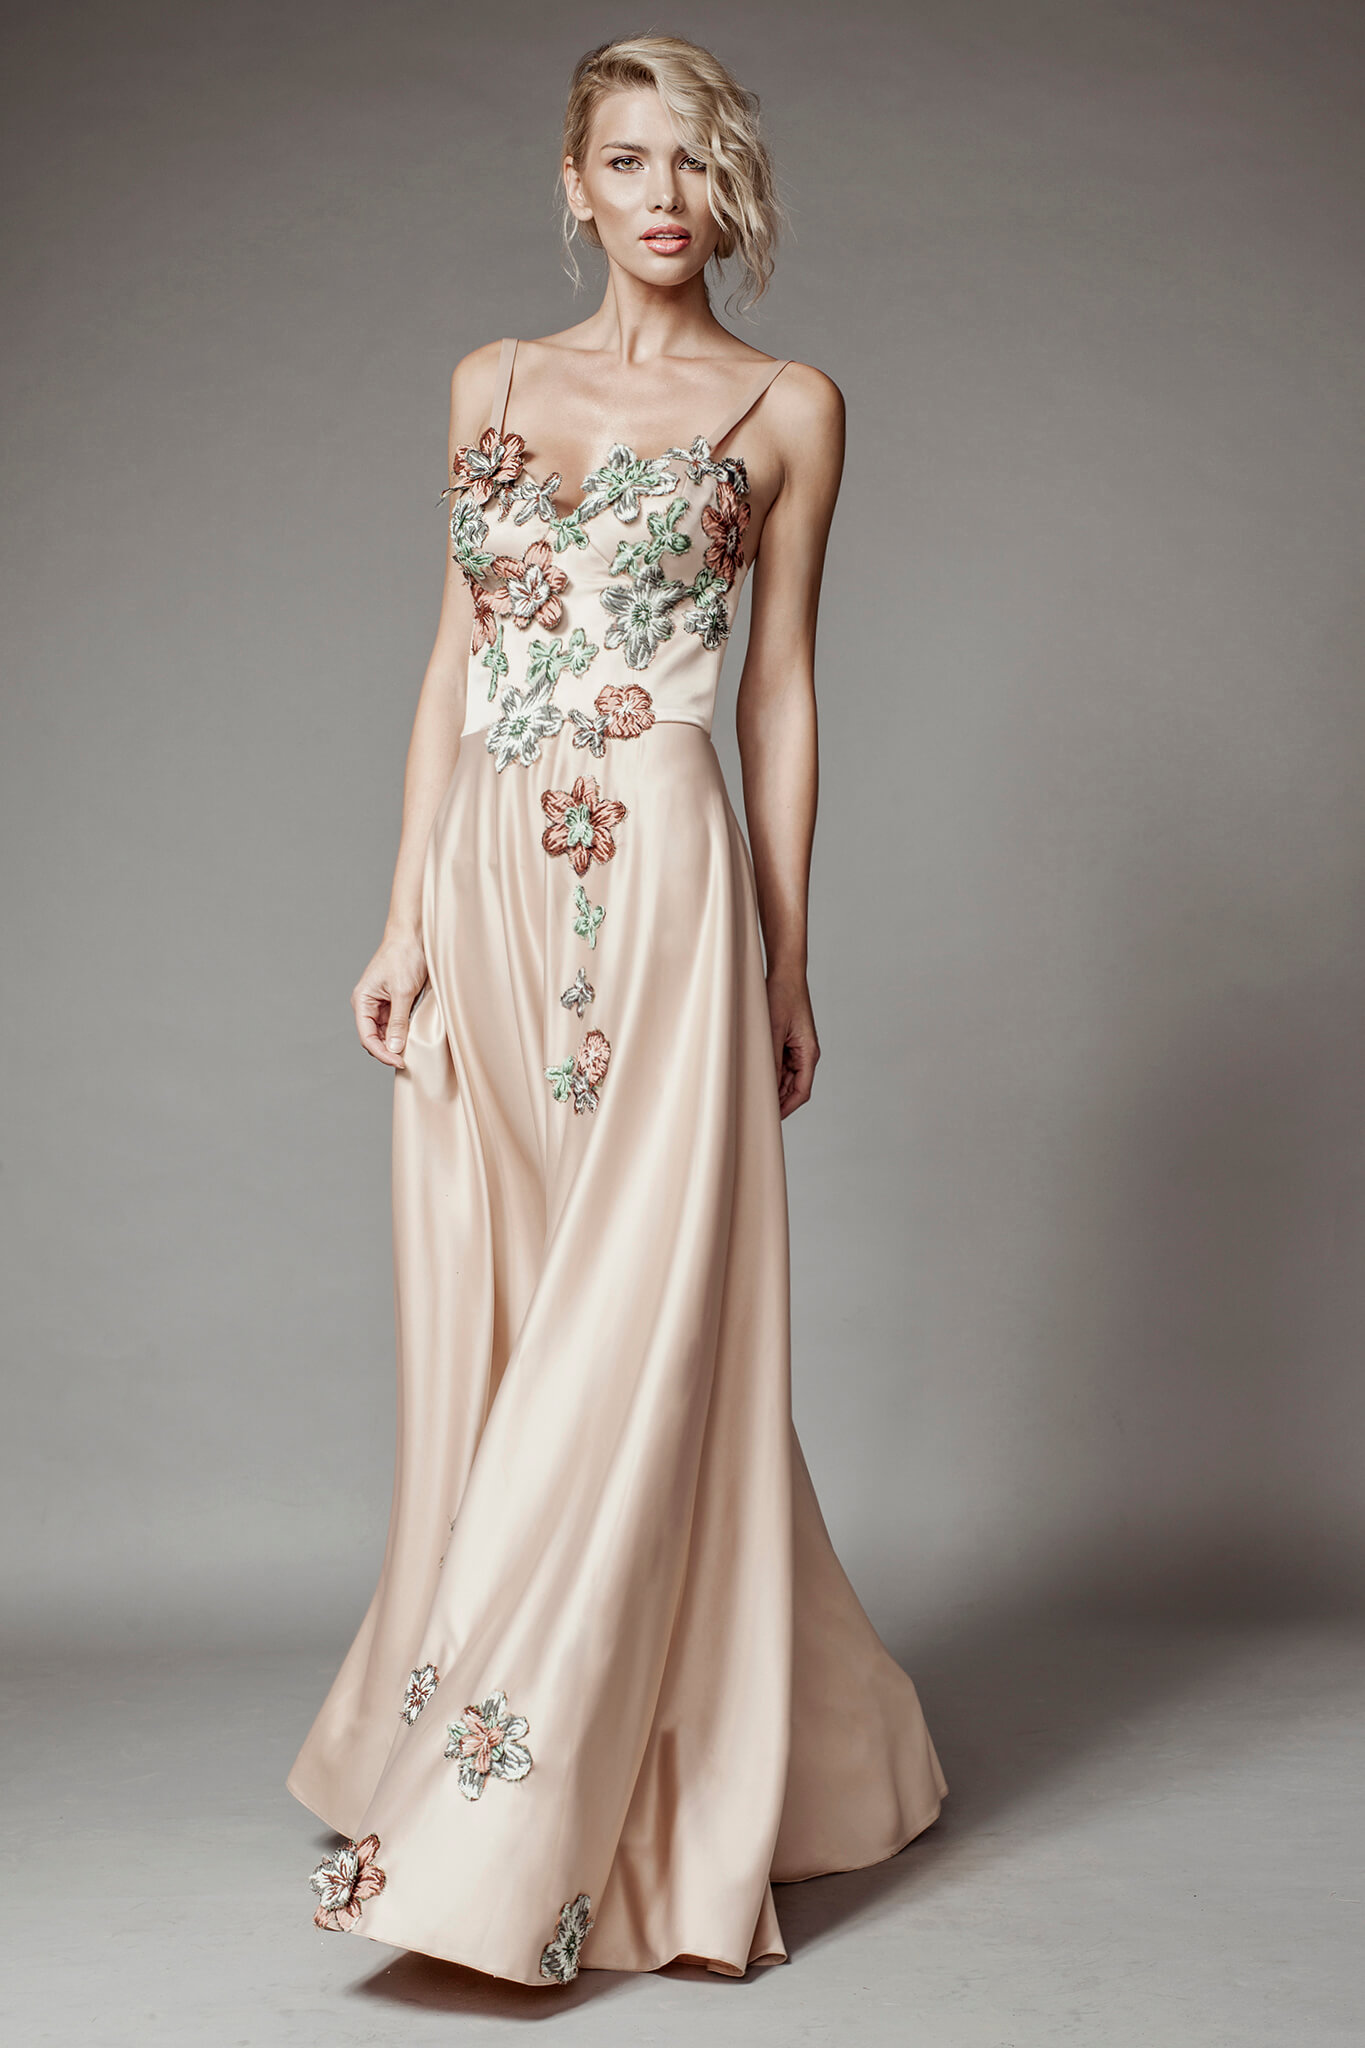 45803a6ed2 Long dress with corset and floral lace details - Aida Lorena Atelier